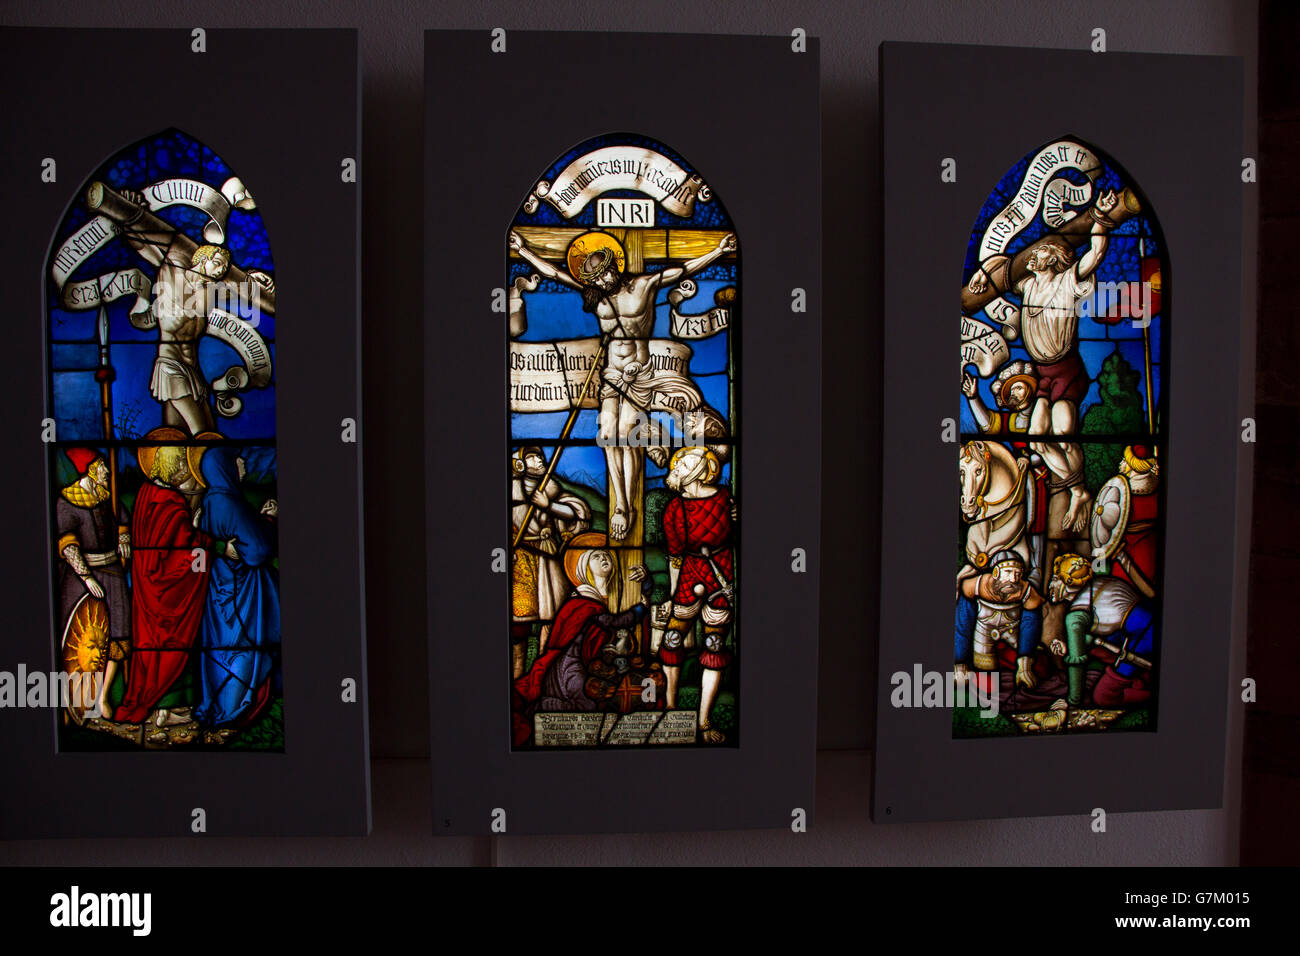 Stained glass windows from the Renaissance era on display at Basel Historical Museum, Basel, Switzerland. - Stock Image